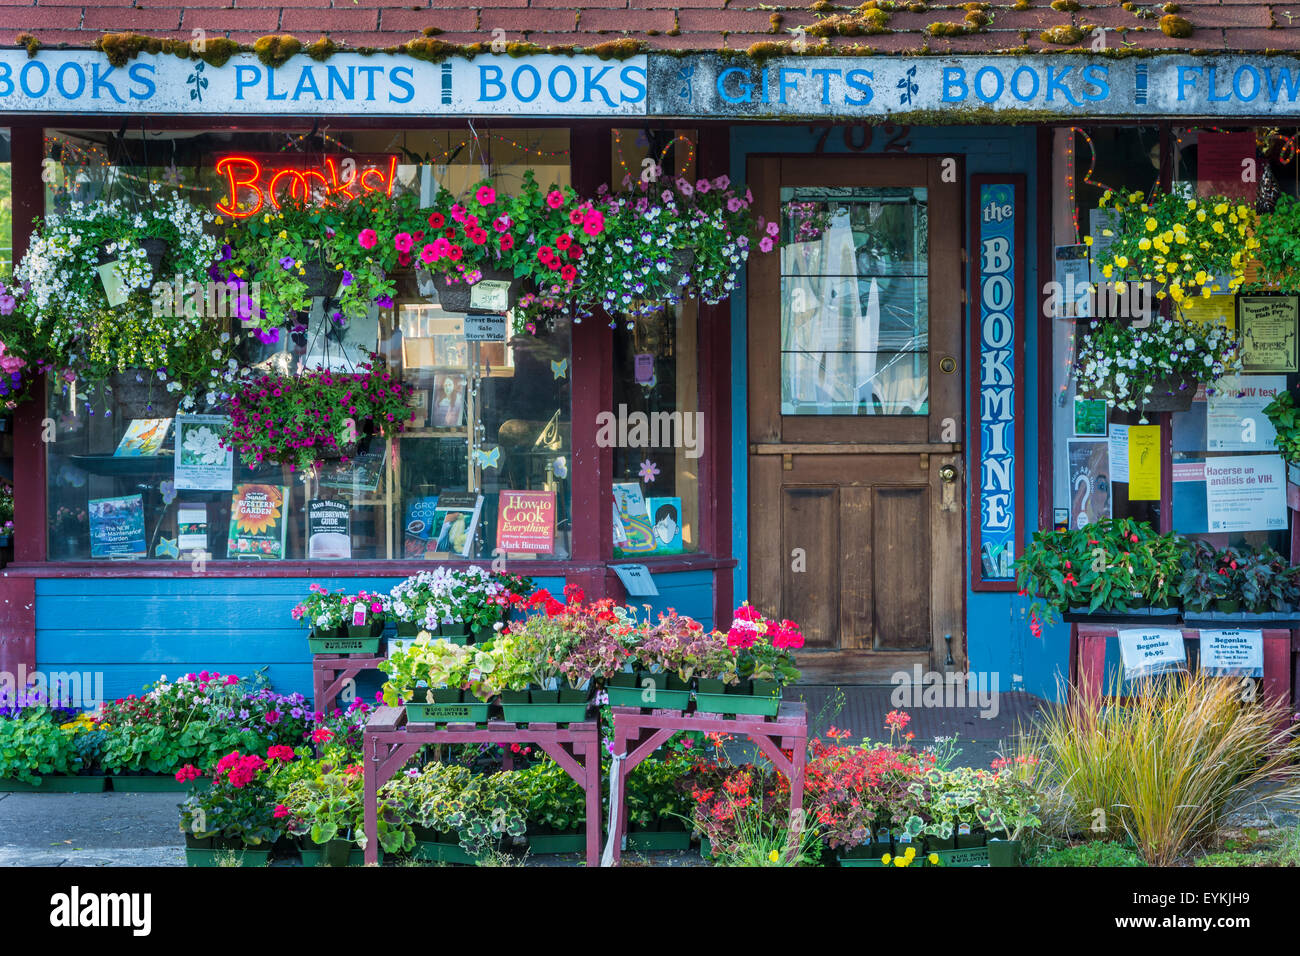 The Bookmine bookstore and plant store on Main Street in Cottage Grove, Oregon. - Stock Image